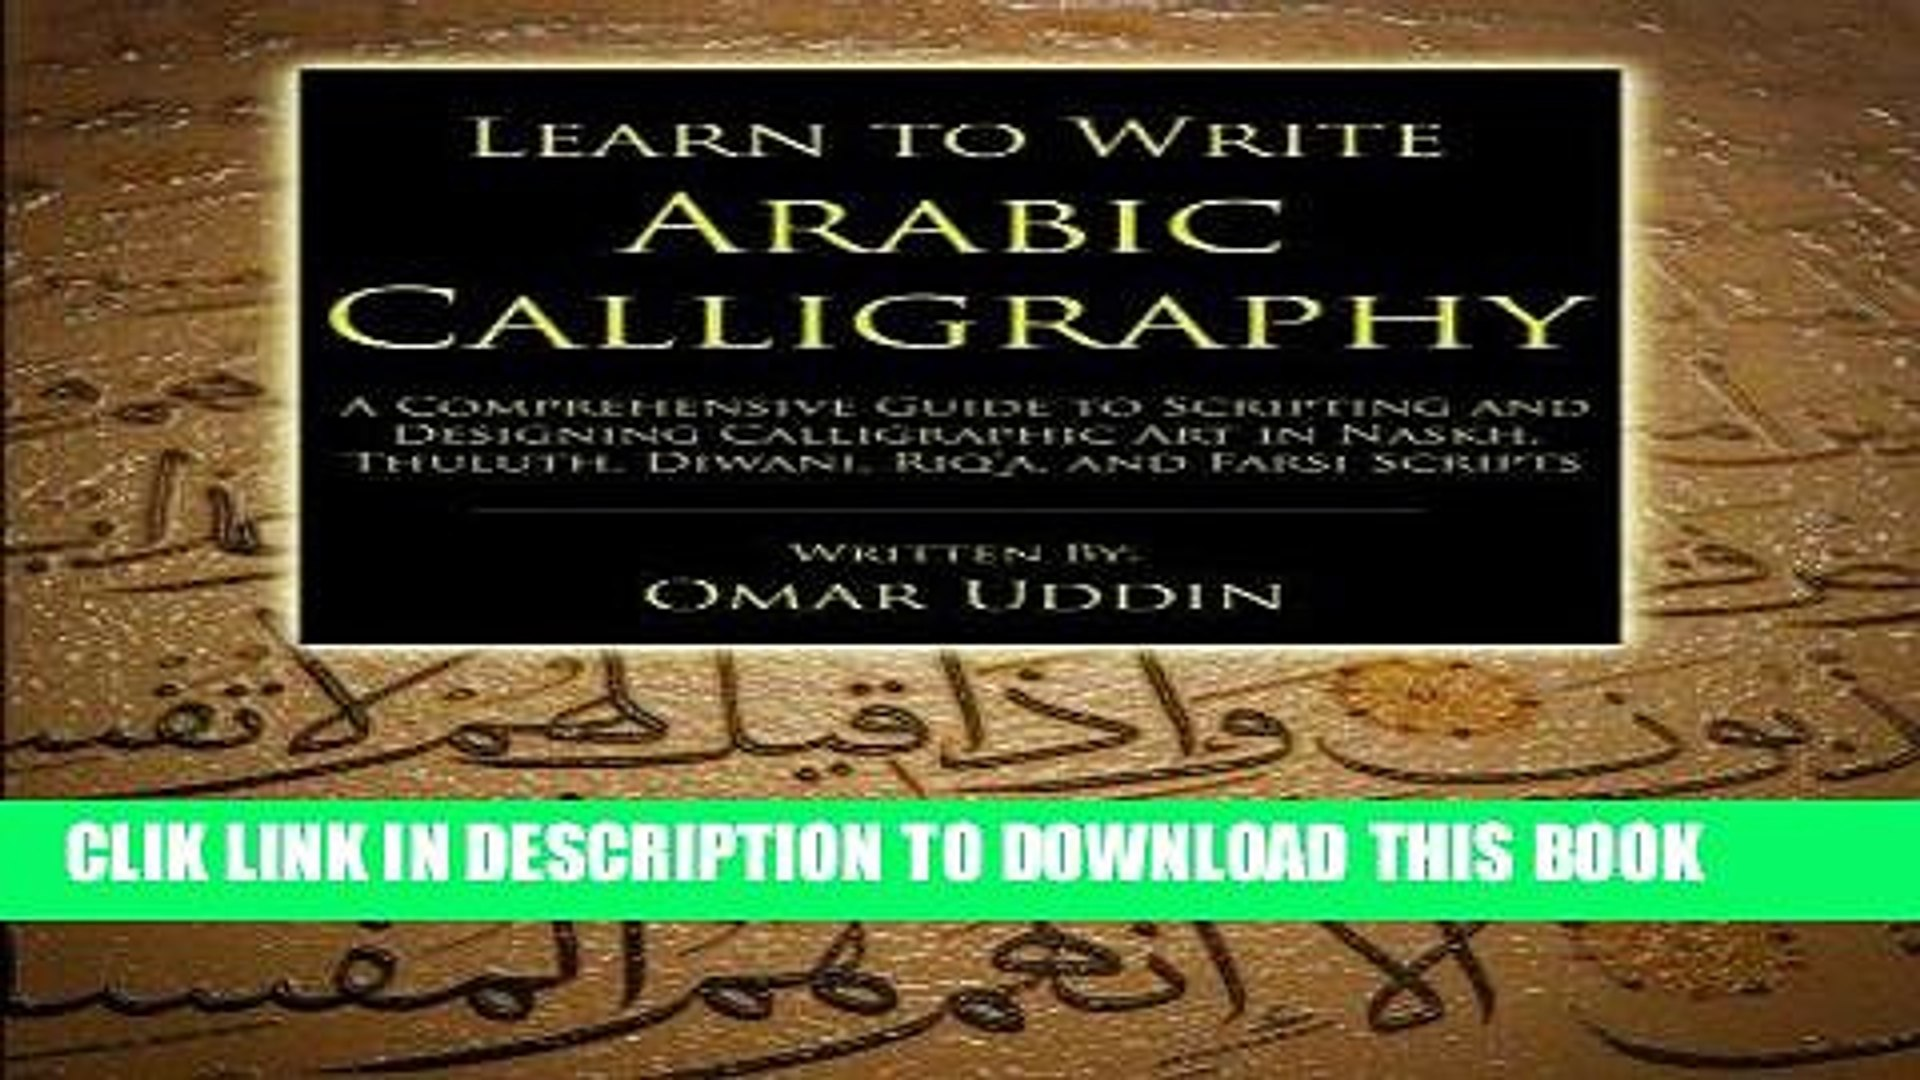 Ebook learn to write arabic calligraphy free download video.